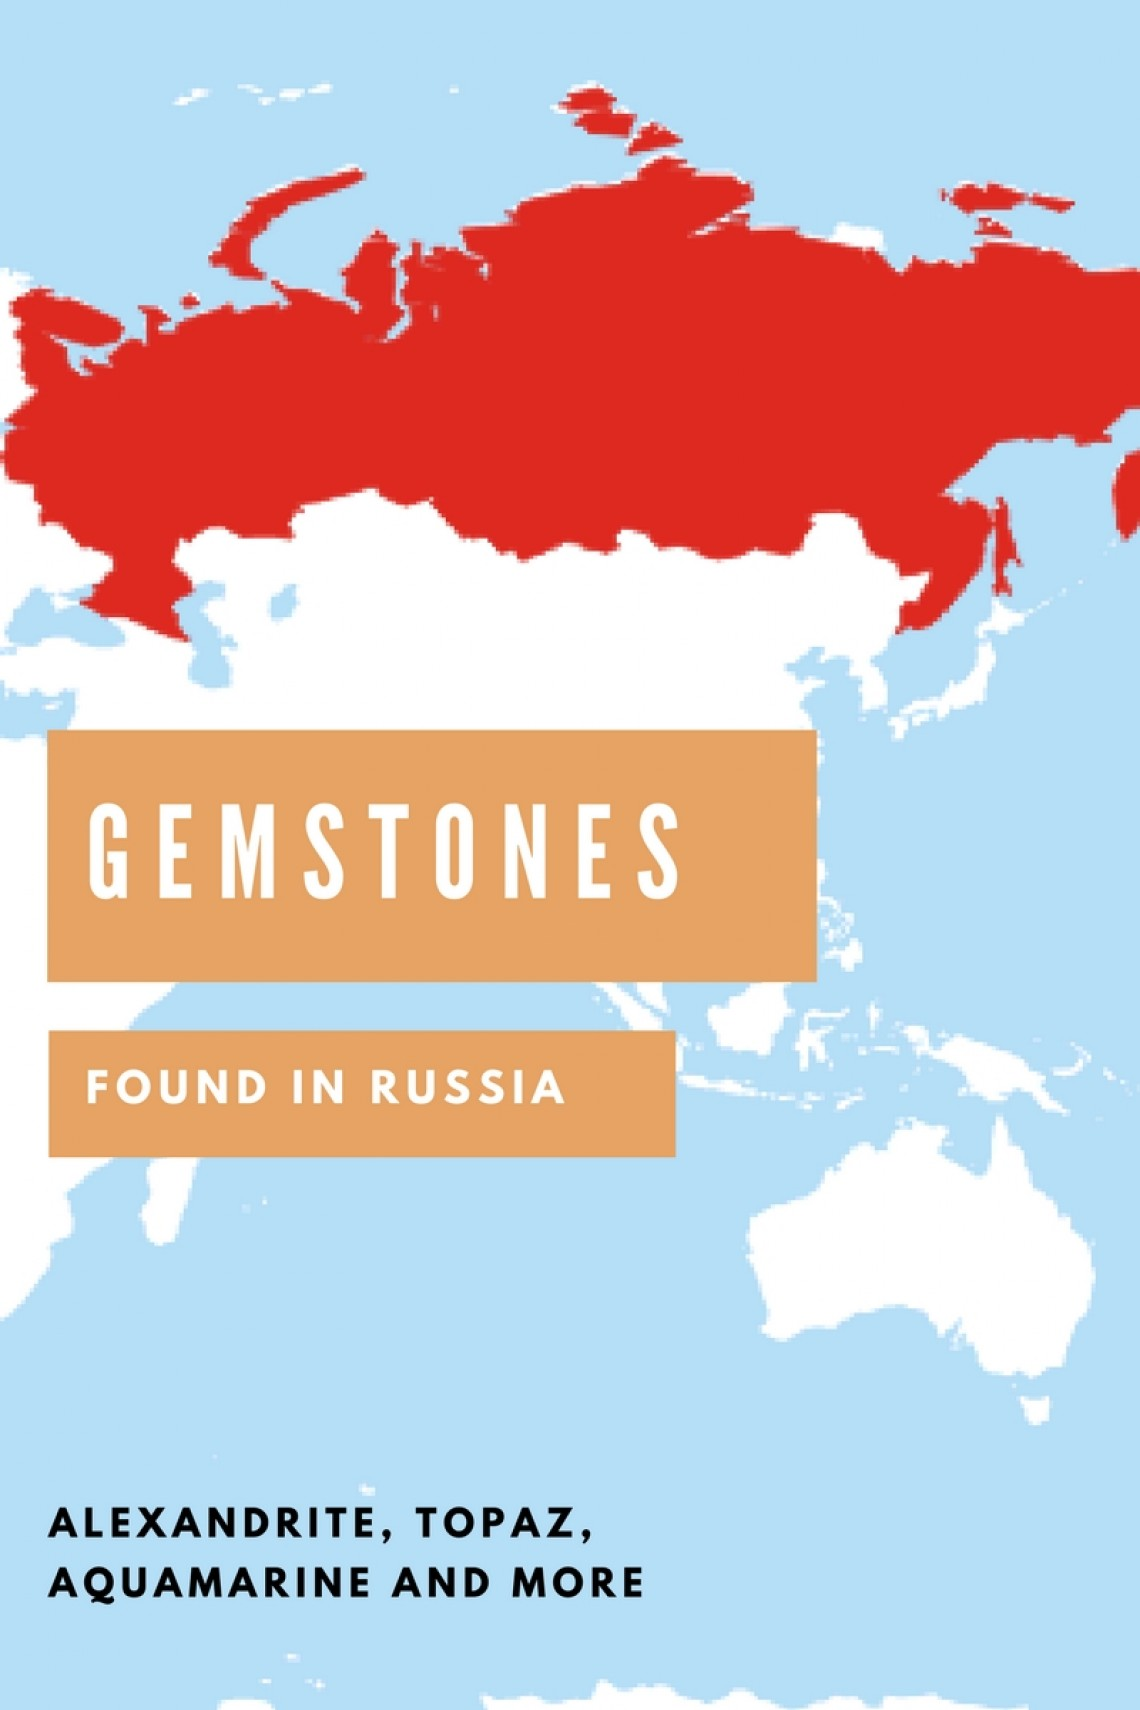 Russian Gemstones and Minerals [List] | Gem Rock Auctions